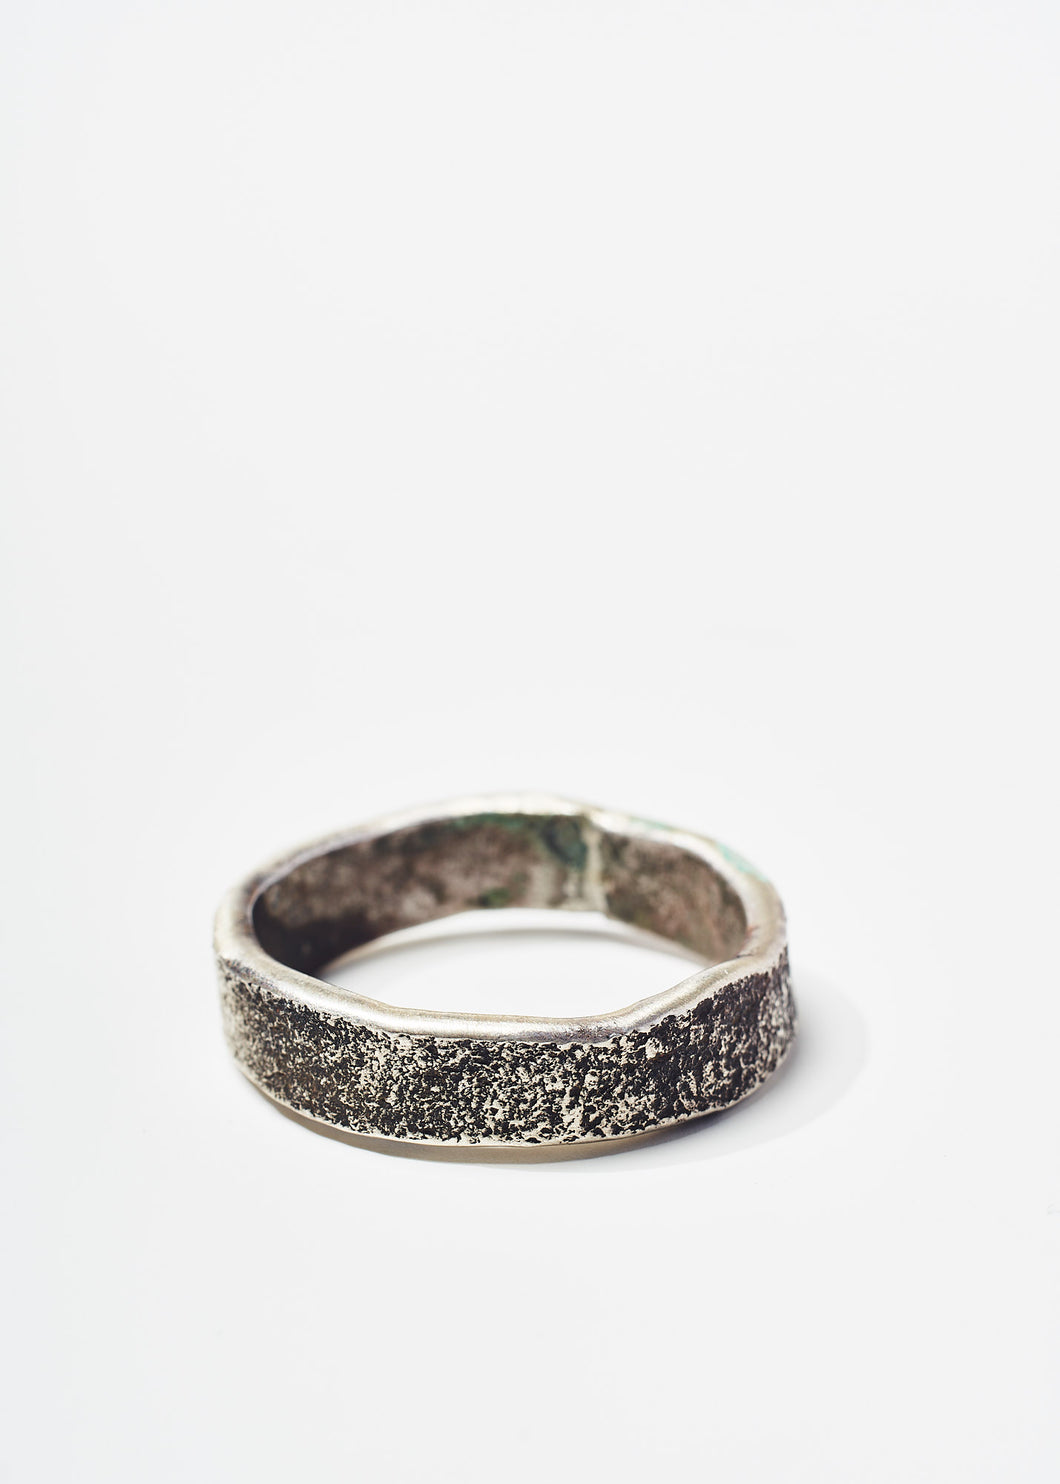 Rock Beaten Ring